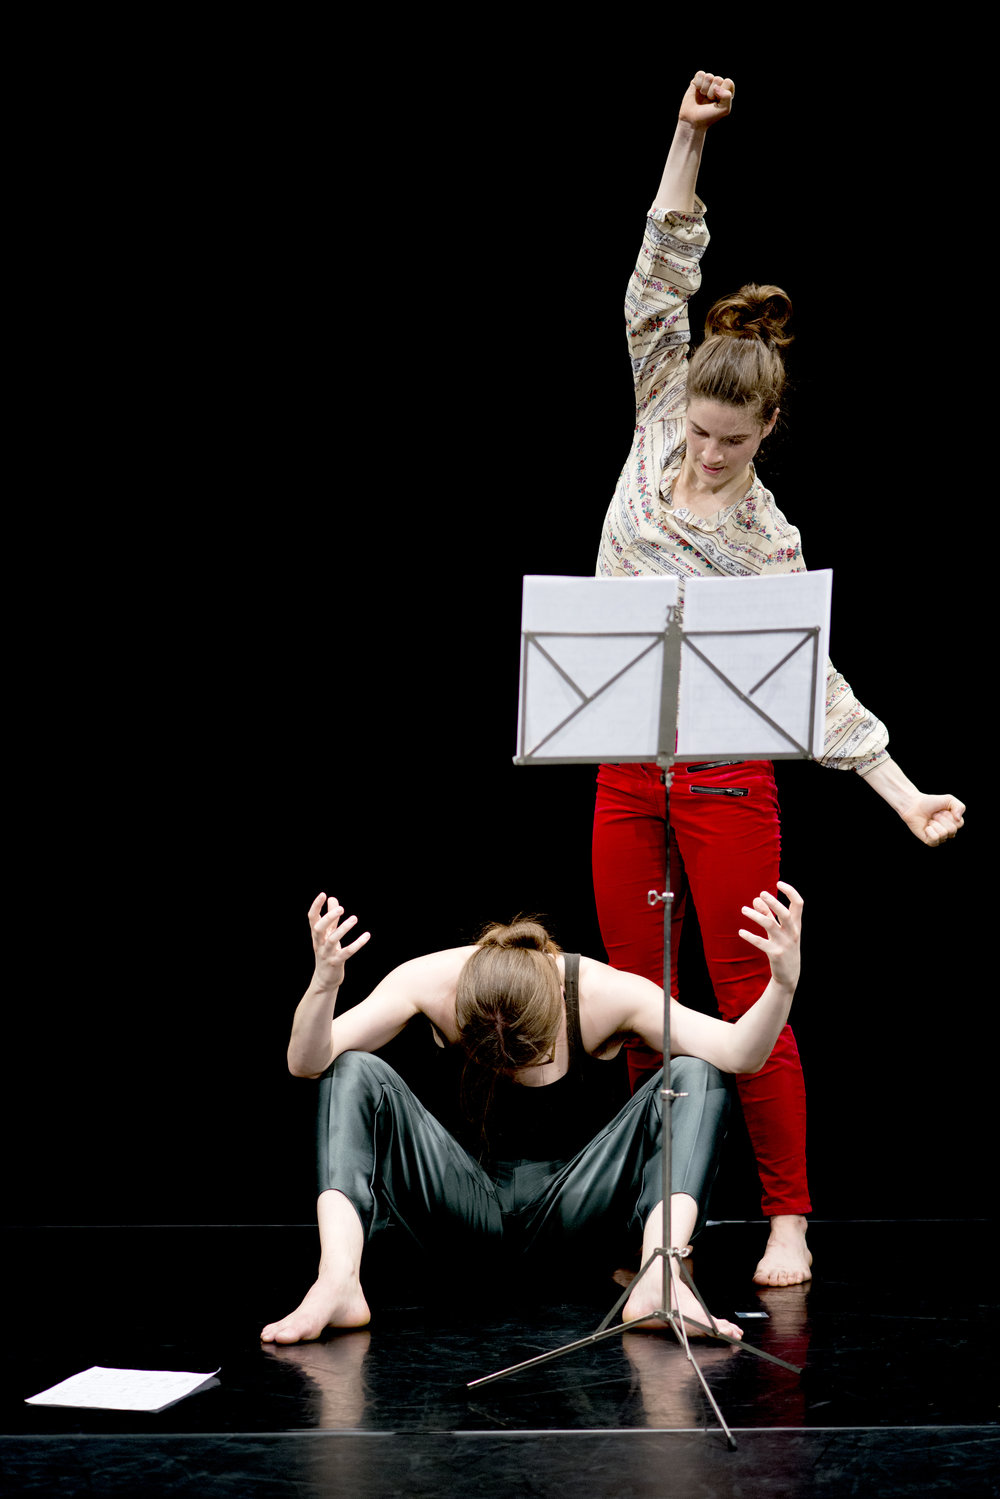 Eleanor And Flora Music, choreography by Eleanor Sikorski and Flora Wellesley Wesley, concept and direction by Jonathan Burrows and Matteo Fargion.